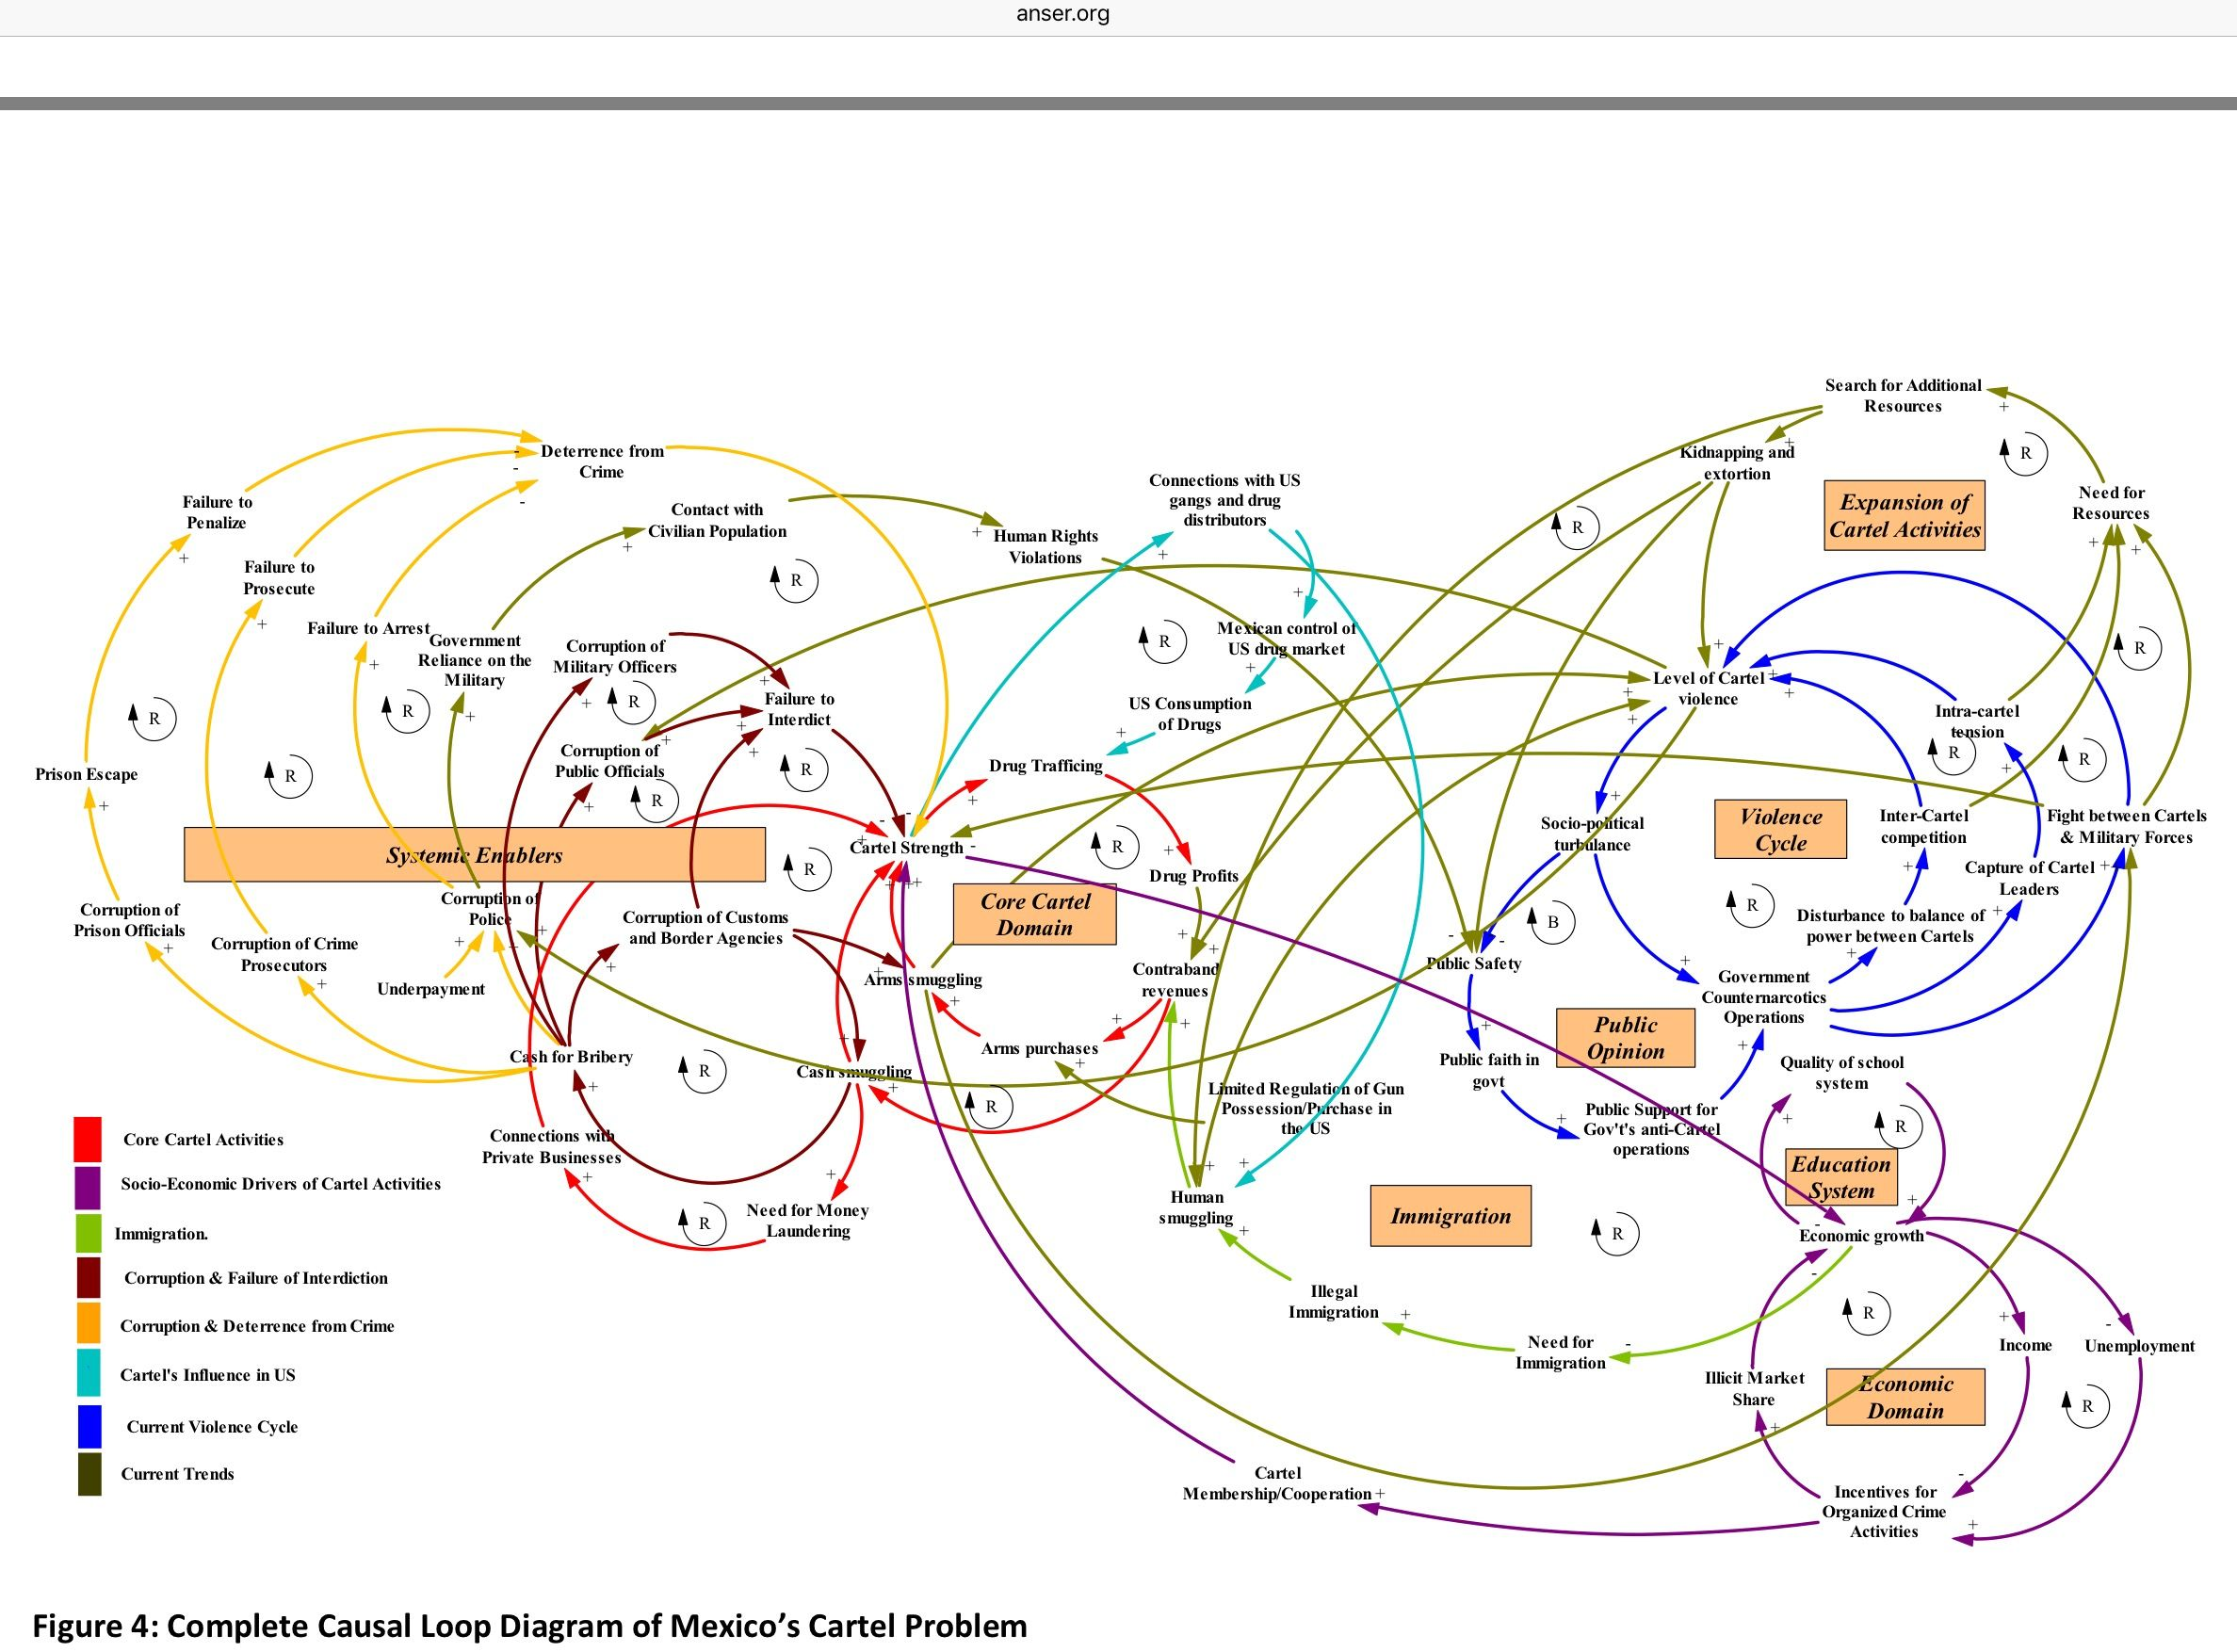 Causal loop diagram of mexicos cartel problem system maps causal loop diagram of mexicos cartel problem ccuart Gallery